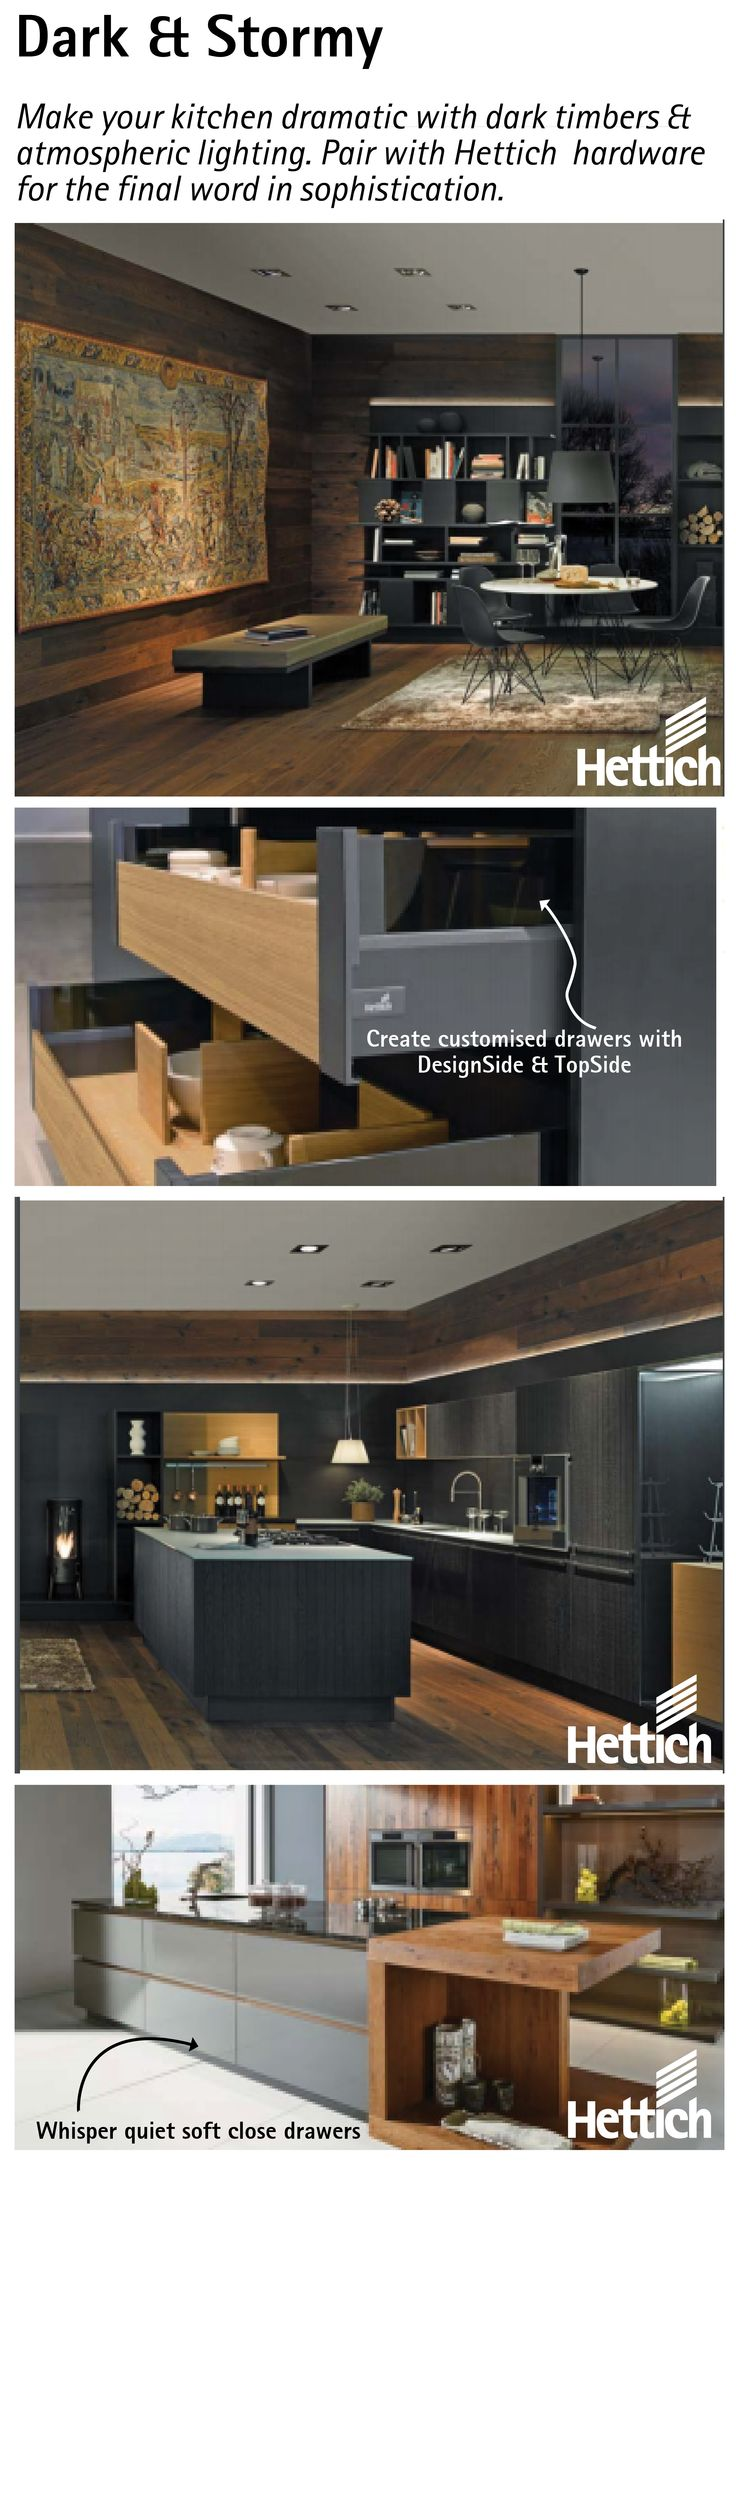 Make your kitchen dramatic with dark timbers & atmospheric lighting. Pair with Hettich hardware for the final word in sophistication. Click on the pin for more inspiration. #darkkitchencabinets #woodencabinets #kitchenideas